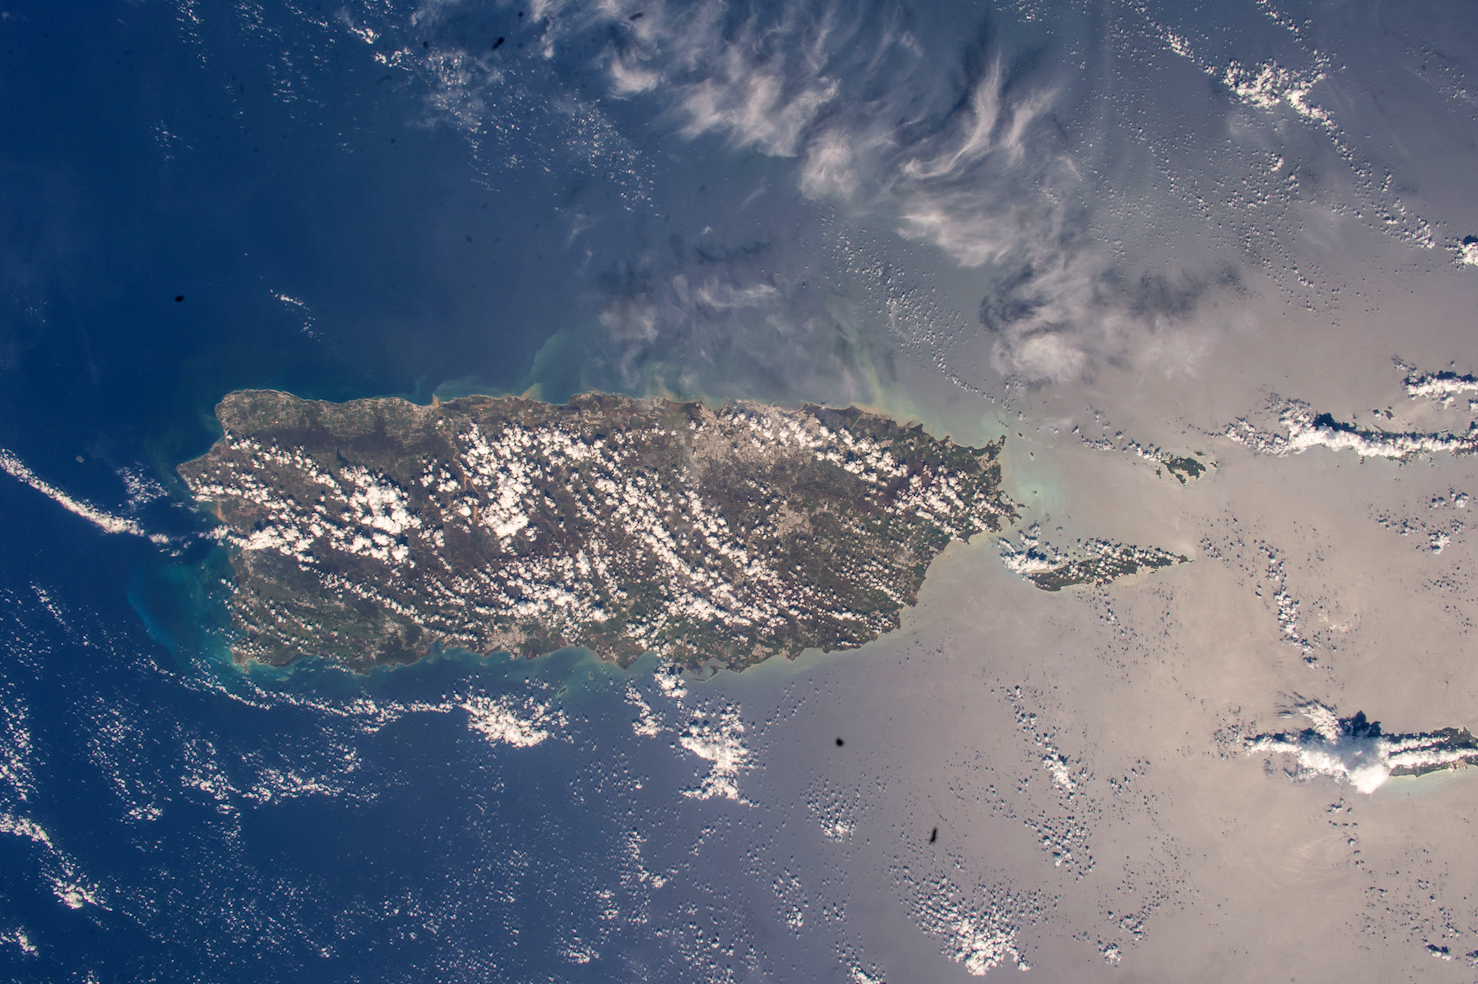 Today's Image of the Day comes courtesy of the NASA Earth Observatory and features a look at Puerto Rico from the International Space Station.